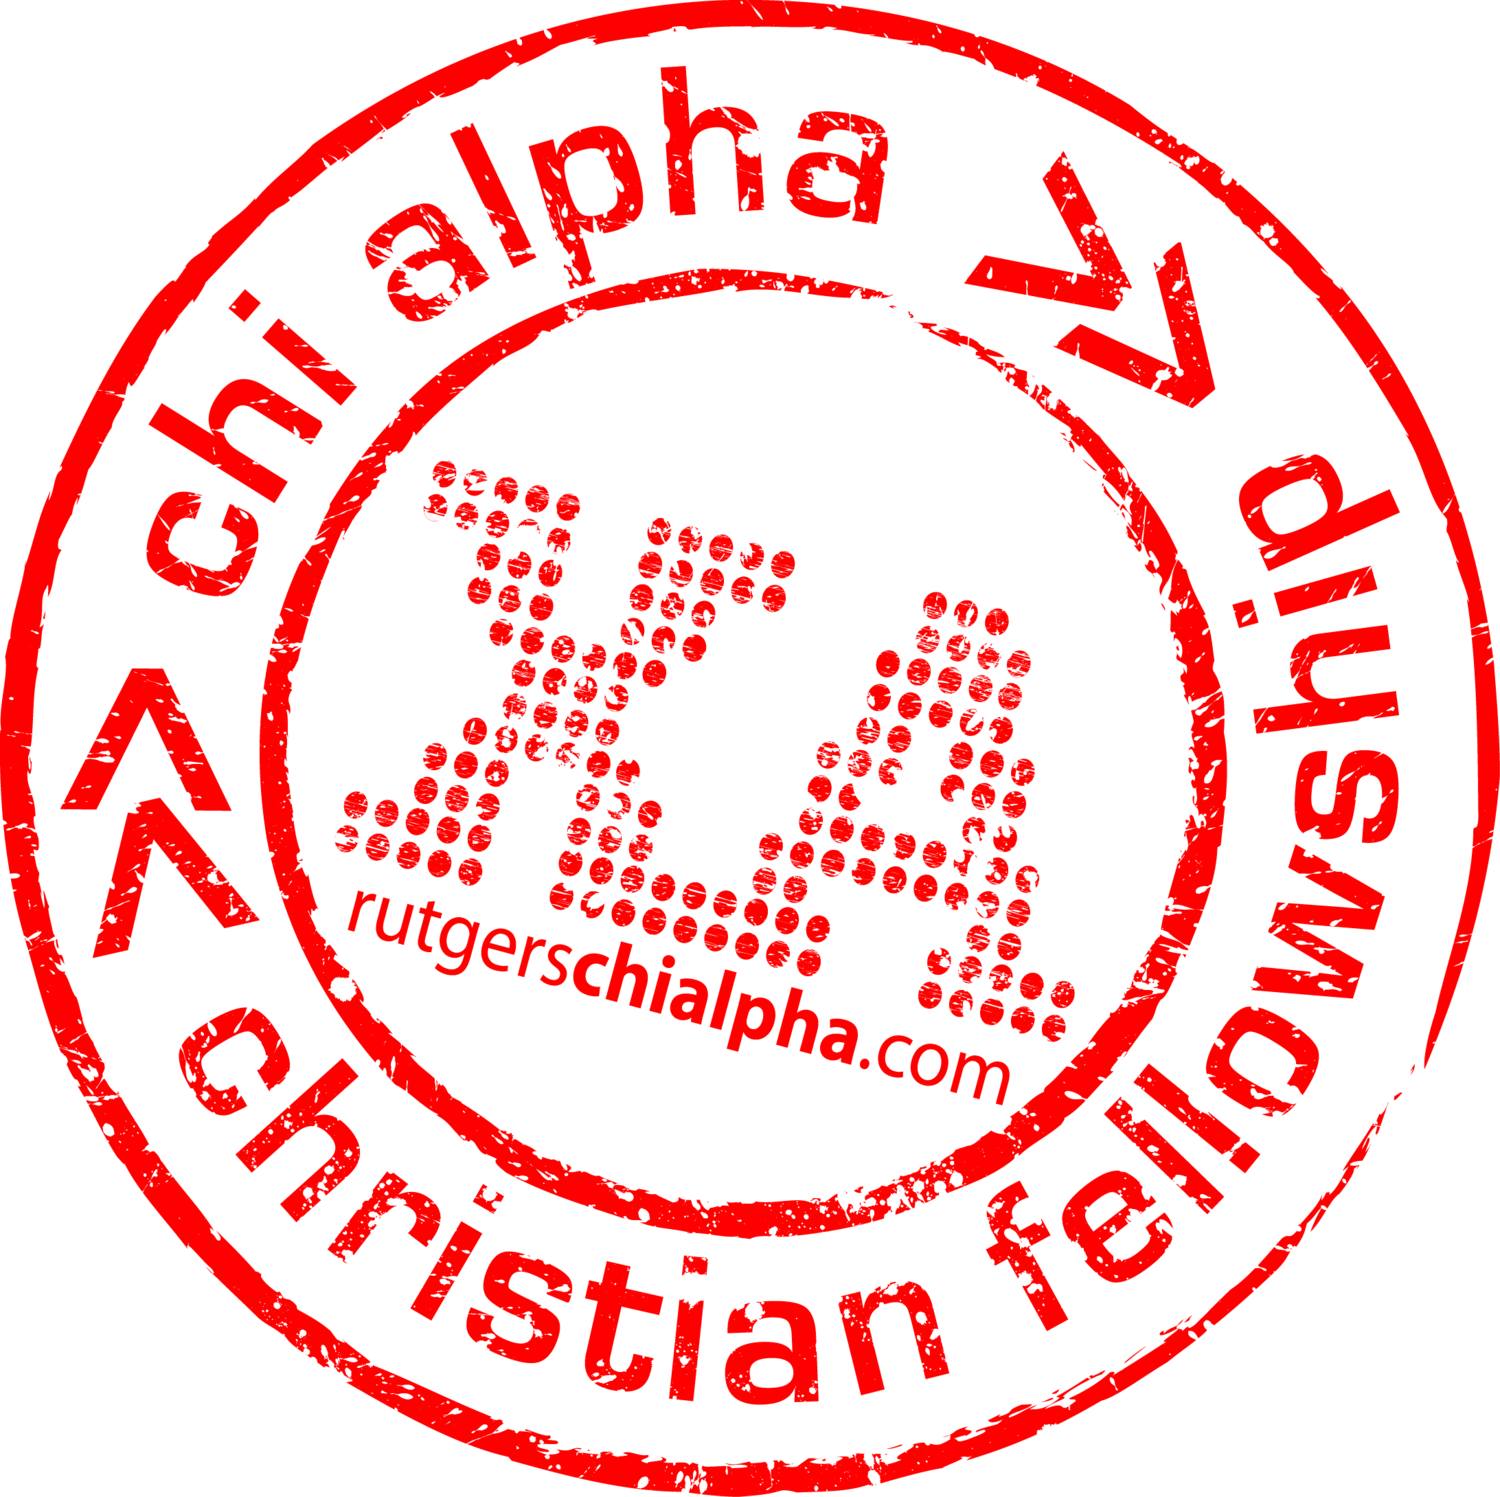 Chi Alpha Christian Fellowship @ Rutgers, The State University of New Jersey